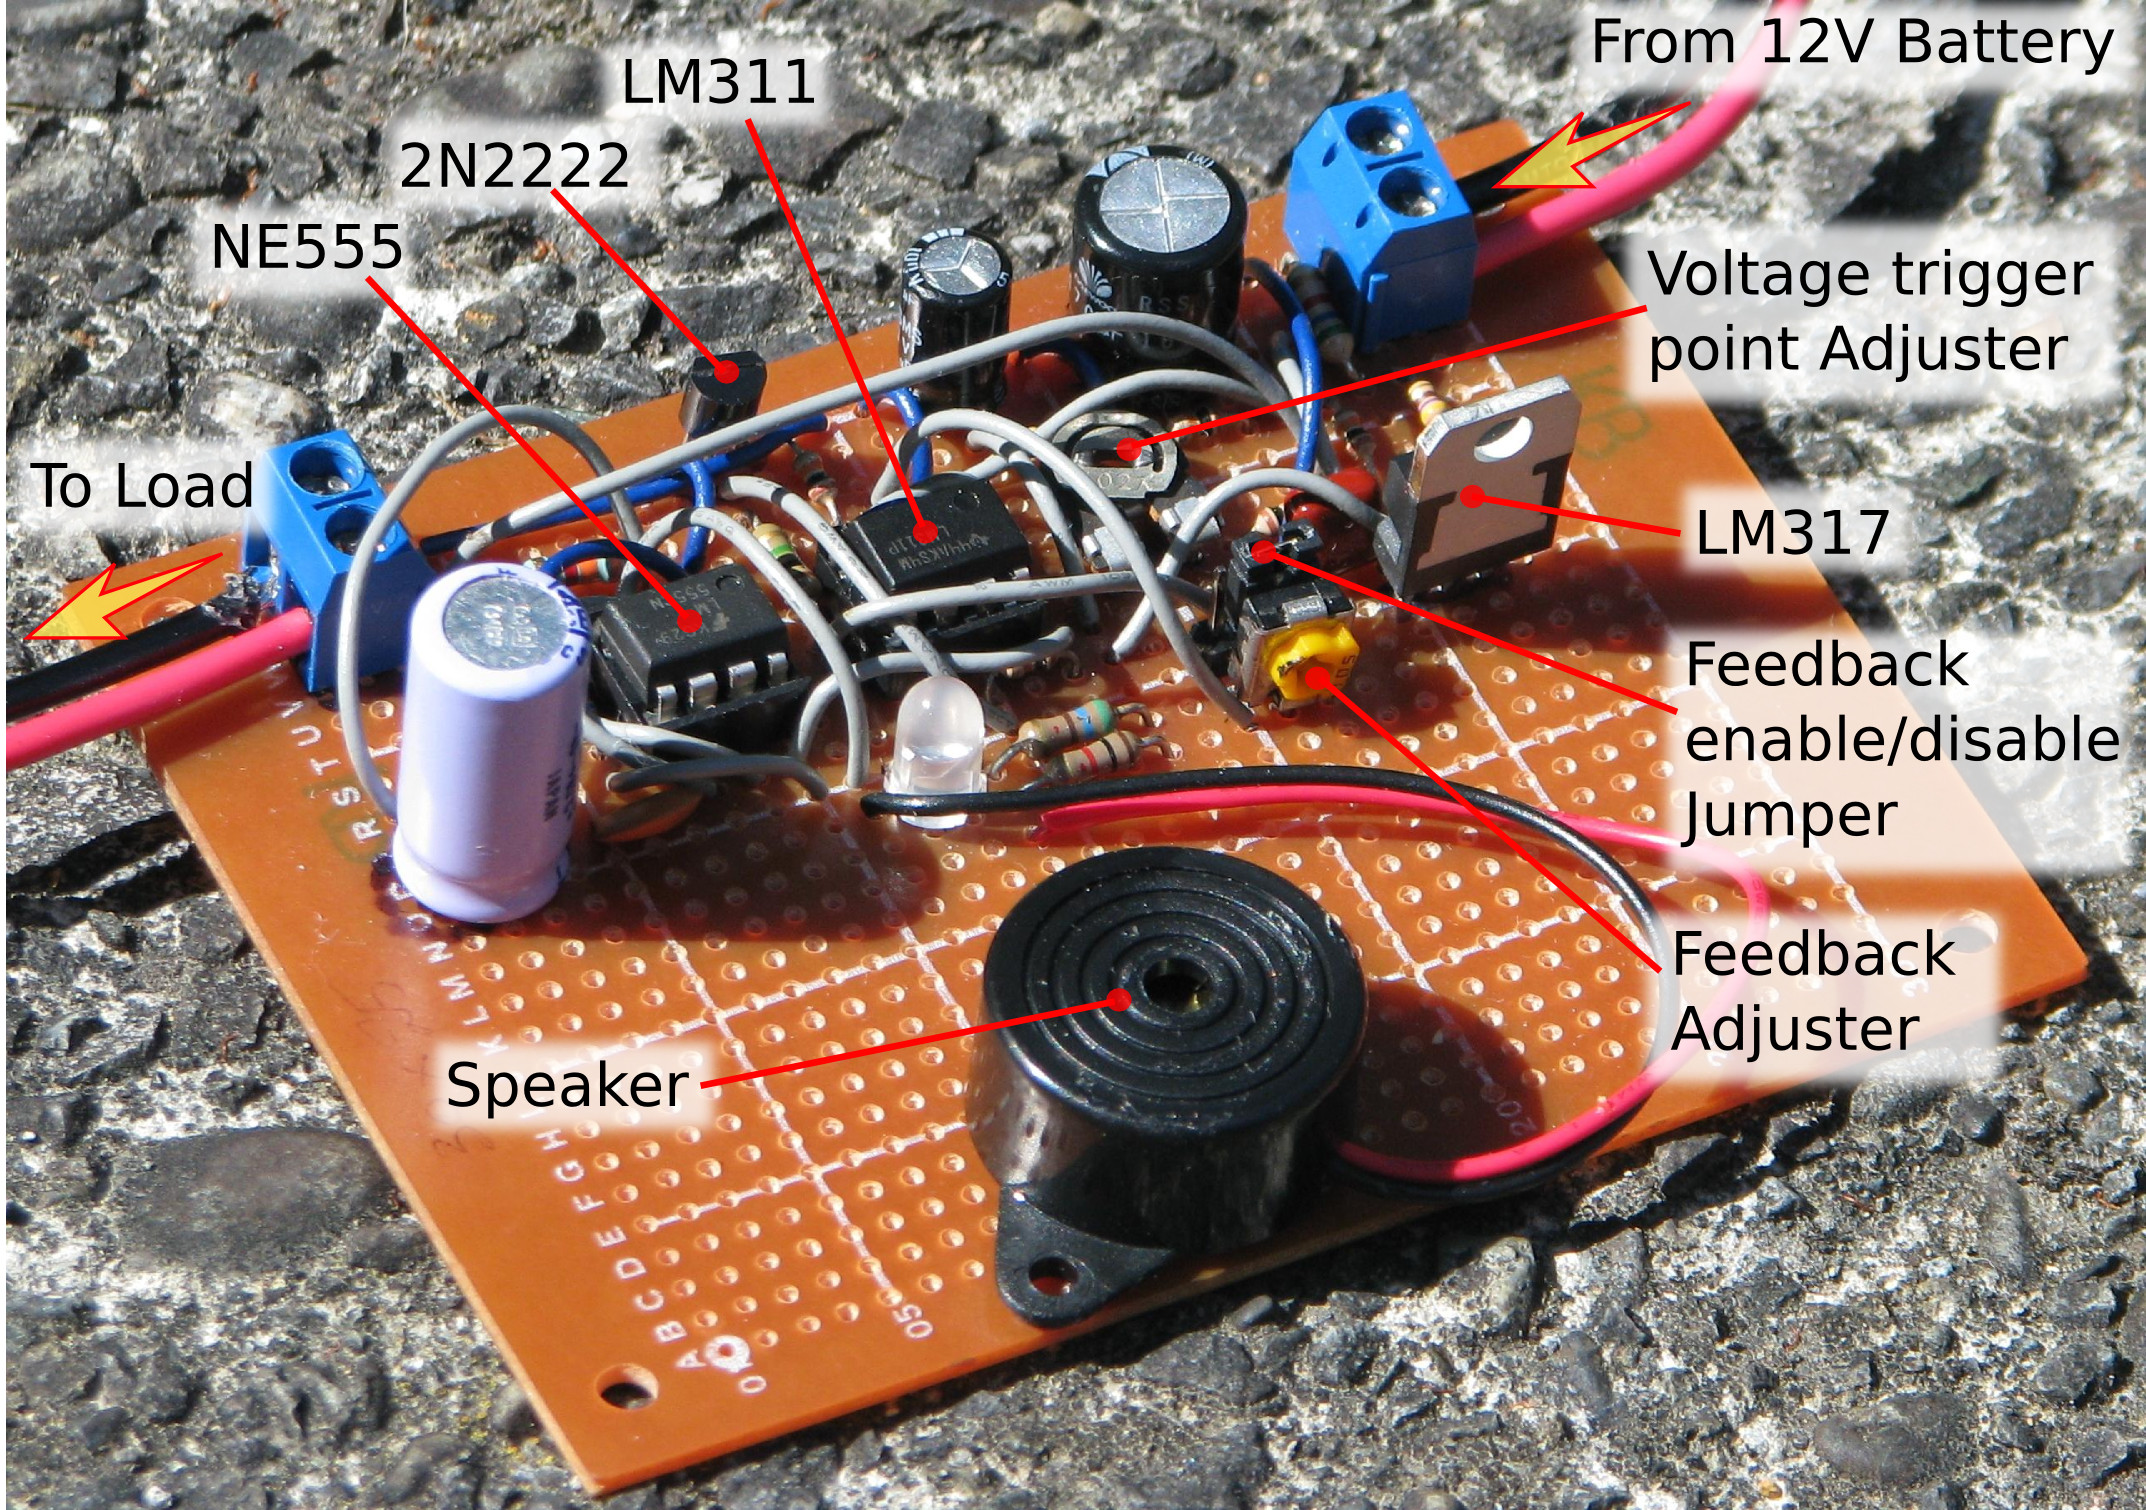 12v Lead Acid Battery Monitor Circuit Photo Of The